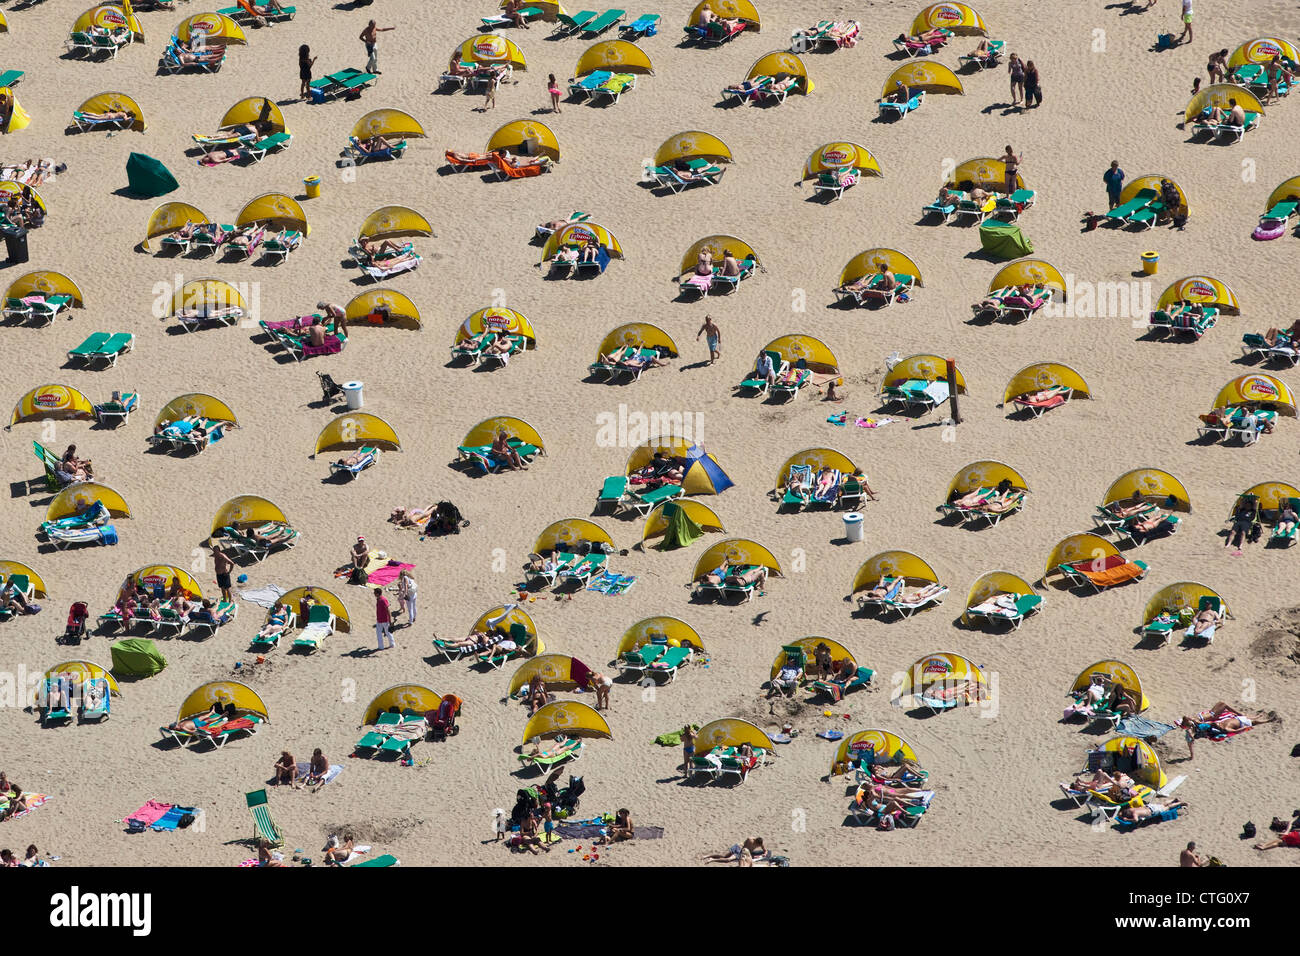 The Netherlands, Zandvoort, Aerial, Beach. - Stock Image